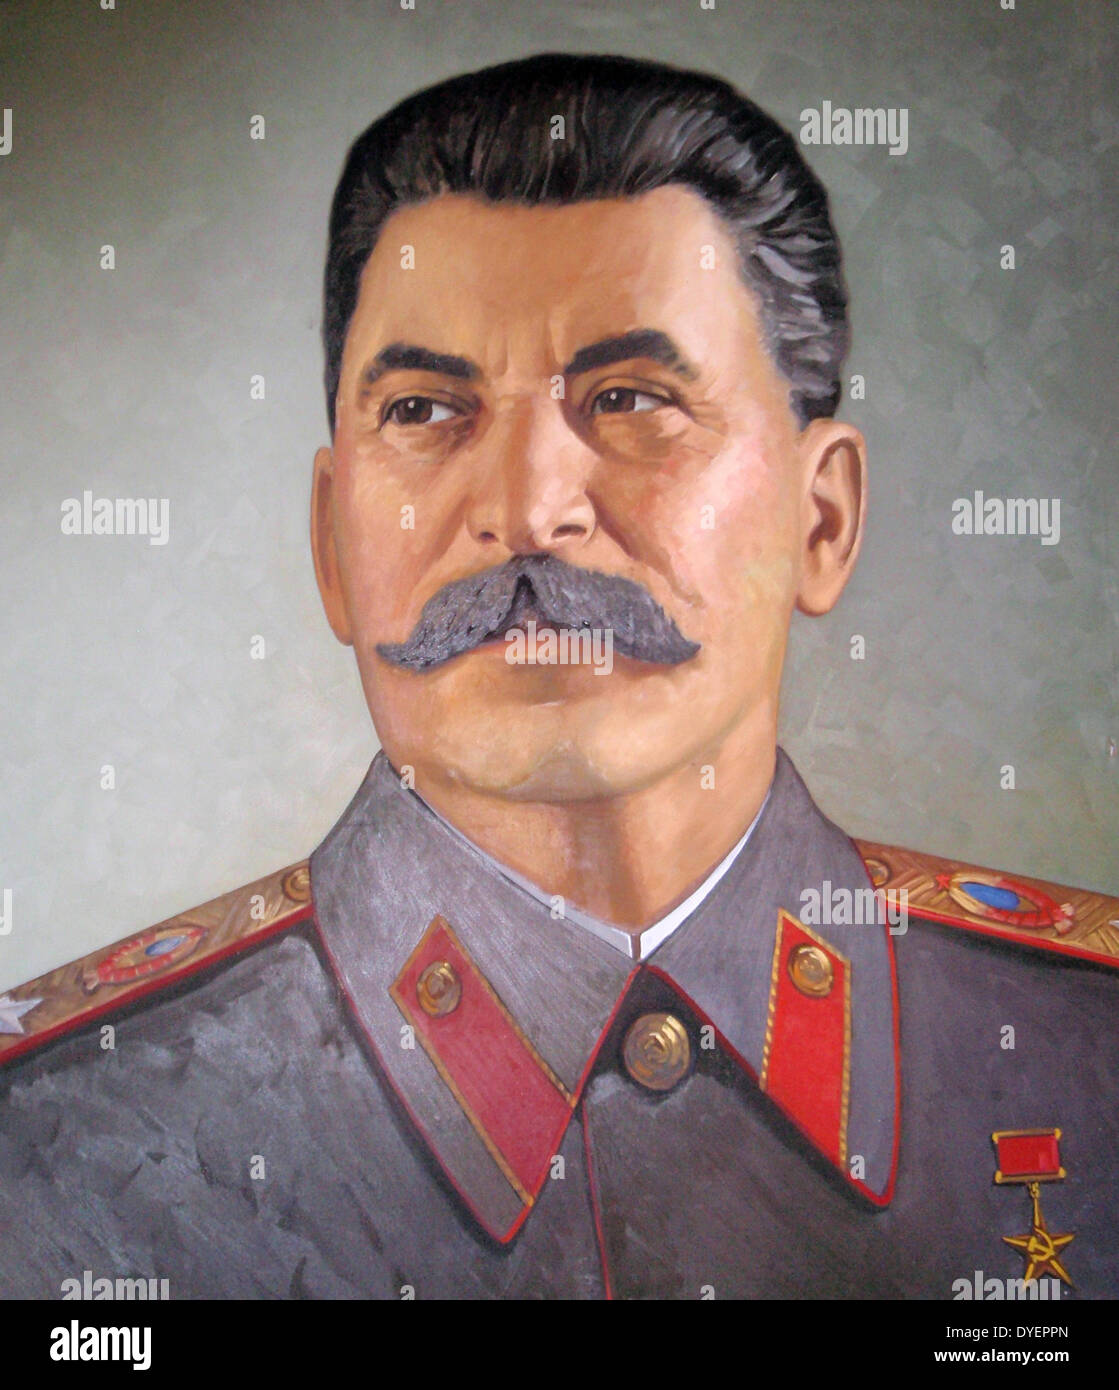 Joseph Stalin, leader of the Soviet Union from the mid-1920s until his death in 1953. - Stock Image